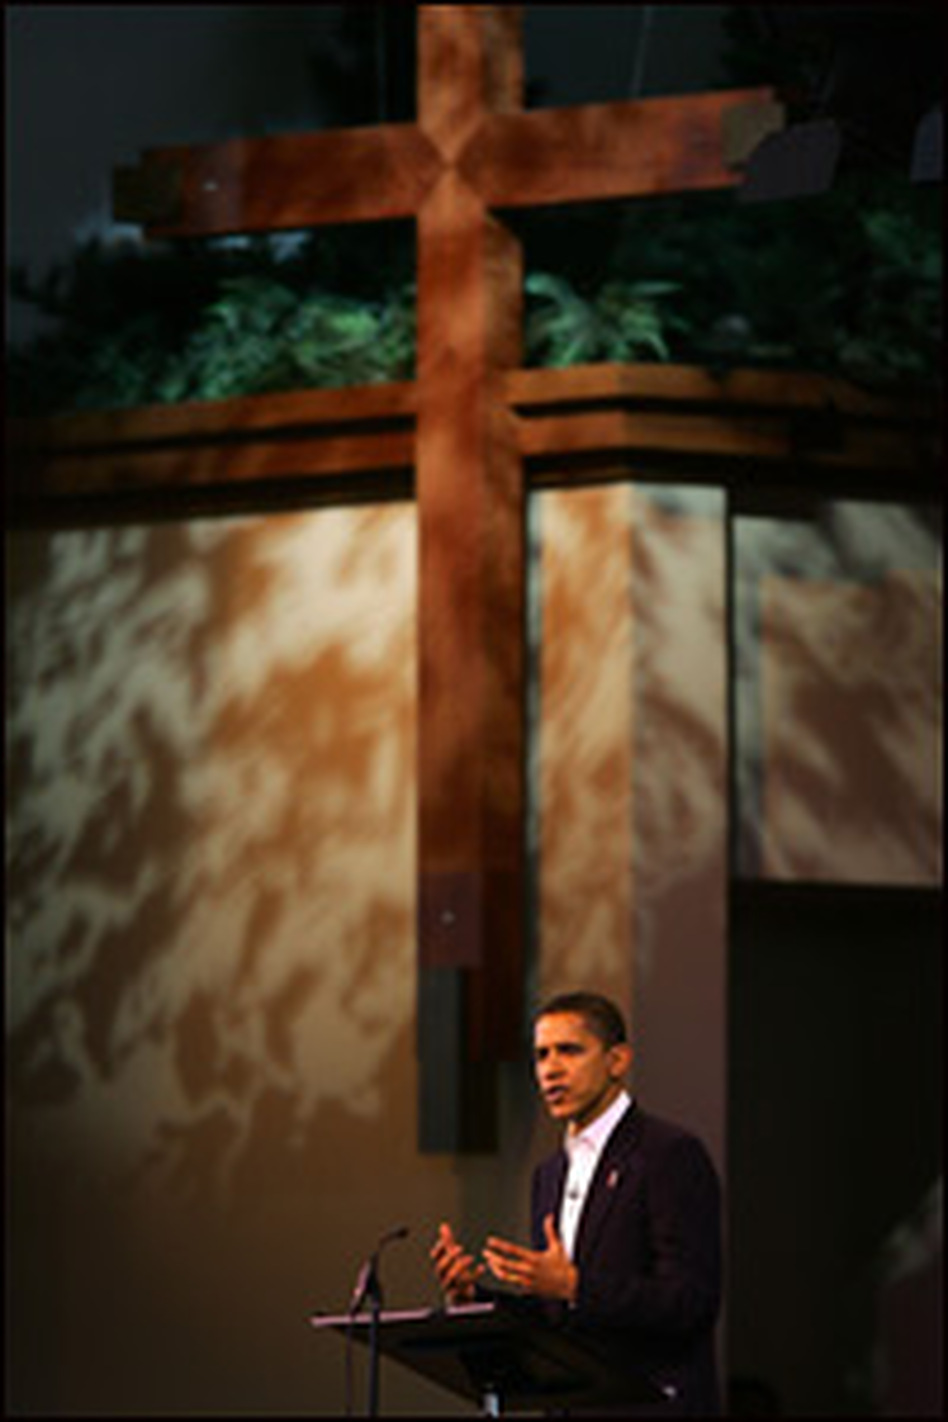 Sen. Barack Obama speaks at the second annual Global Summit on AIDS and The Church at Saddleback Church on Dec. 1, 2006, in California.